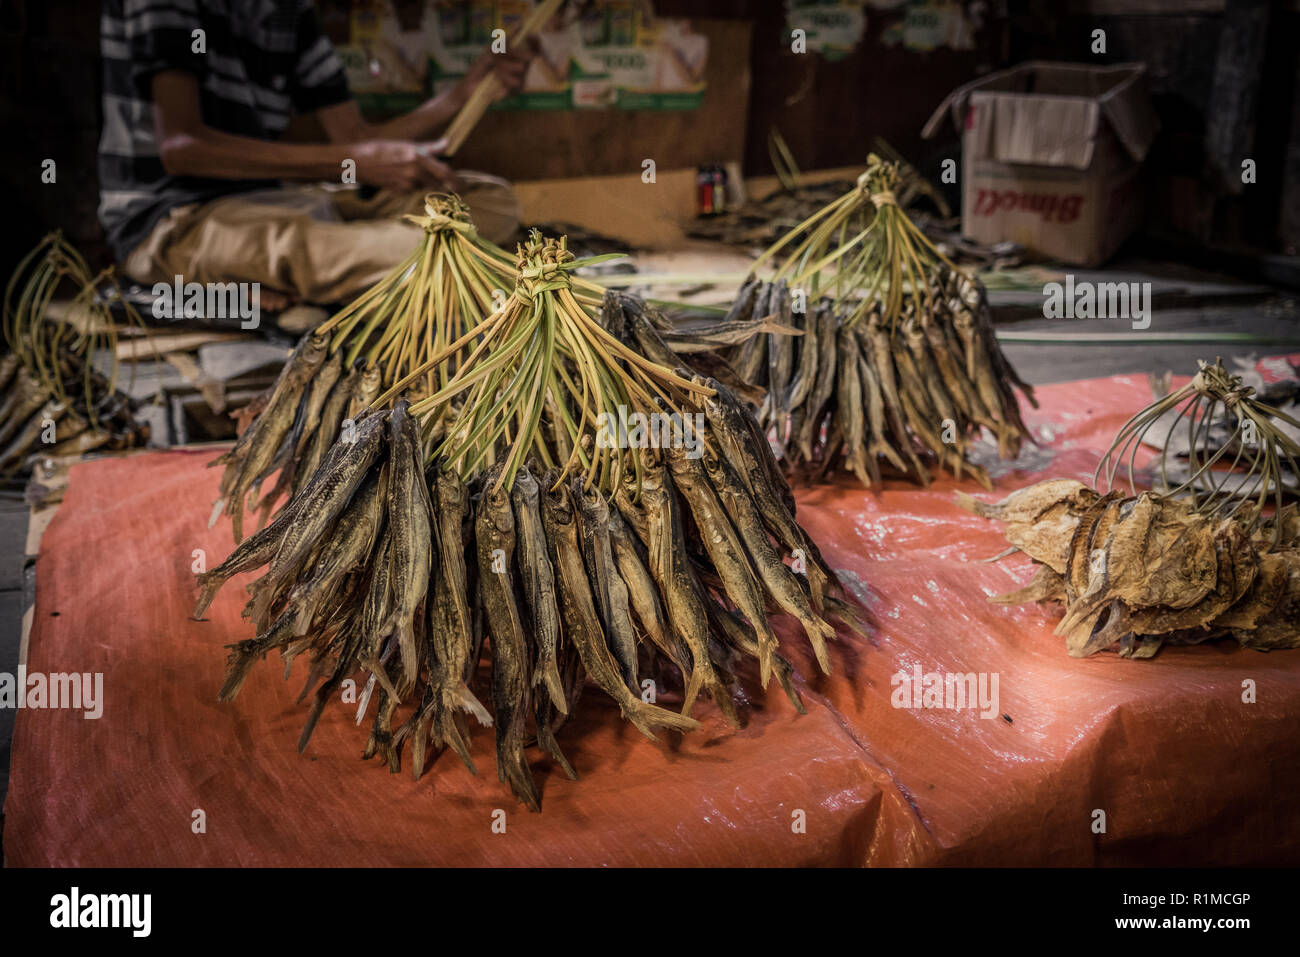 Dried fish at the market in Ruteng, Indonesia on the island of Flores - Stock Image